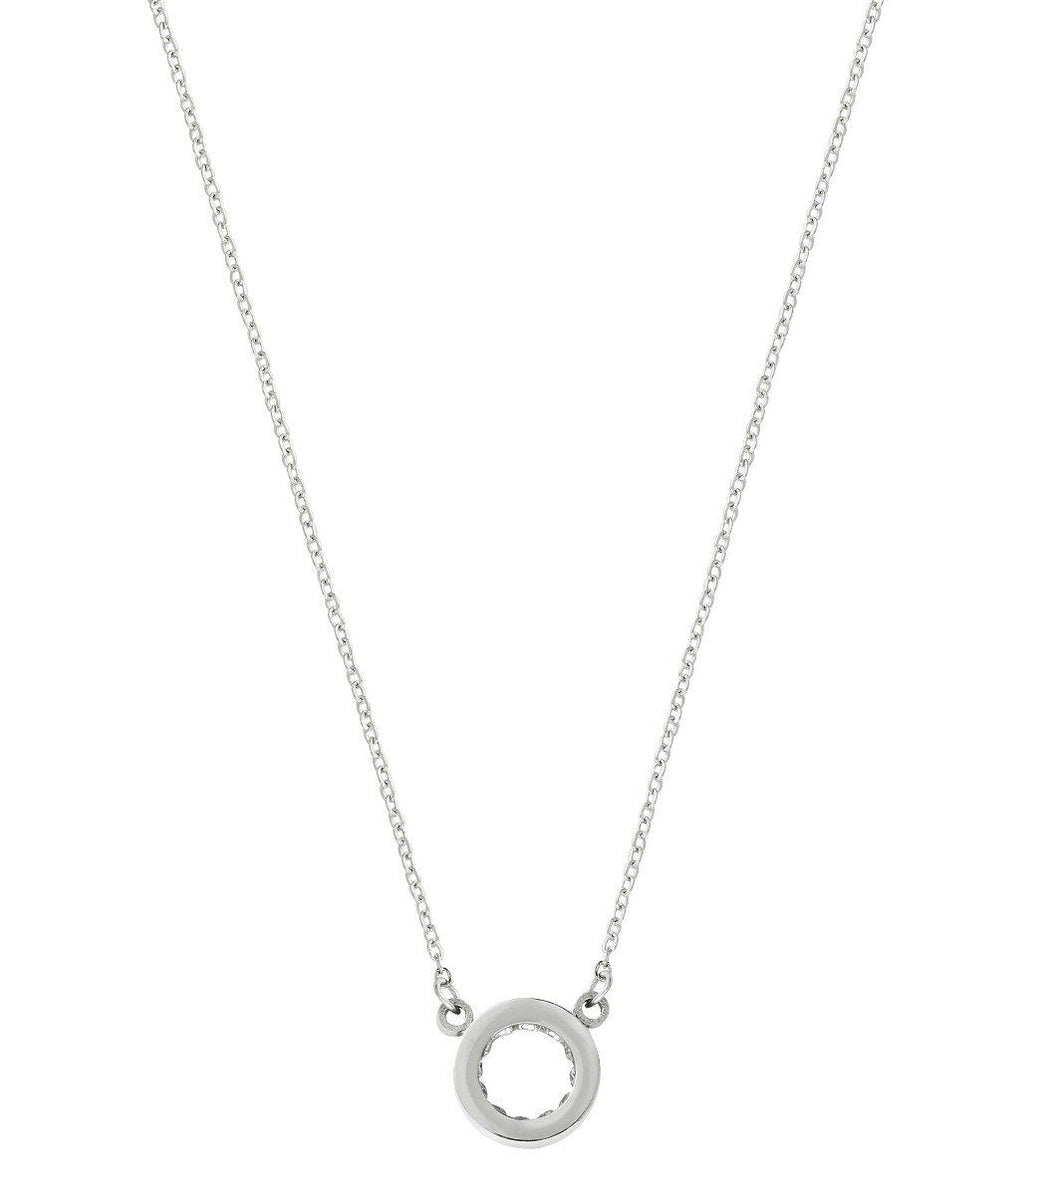 MONACO NECKLACE MINI STEEL